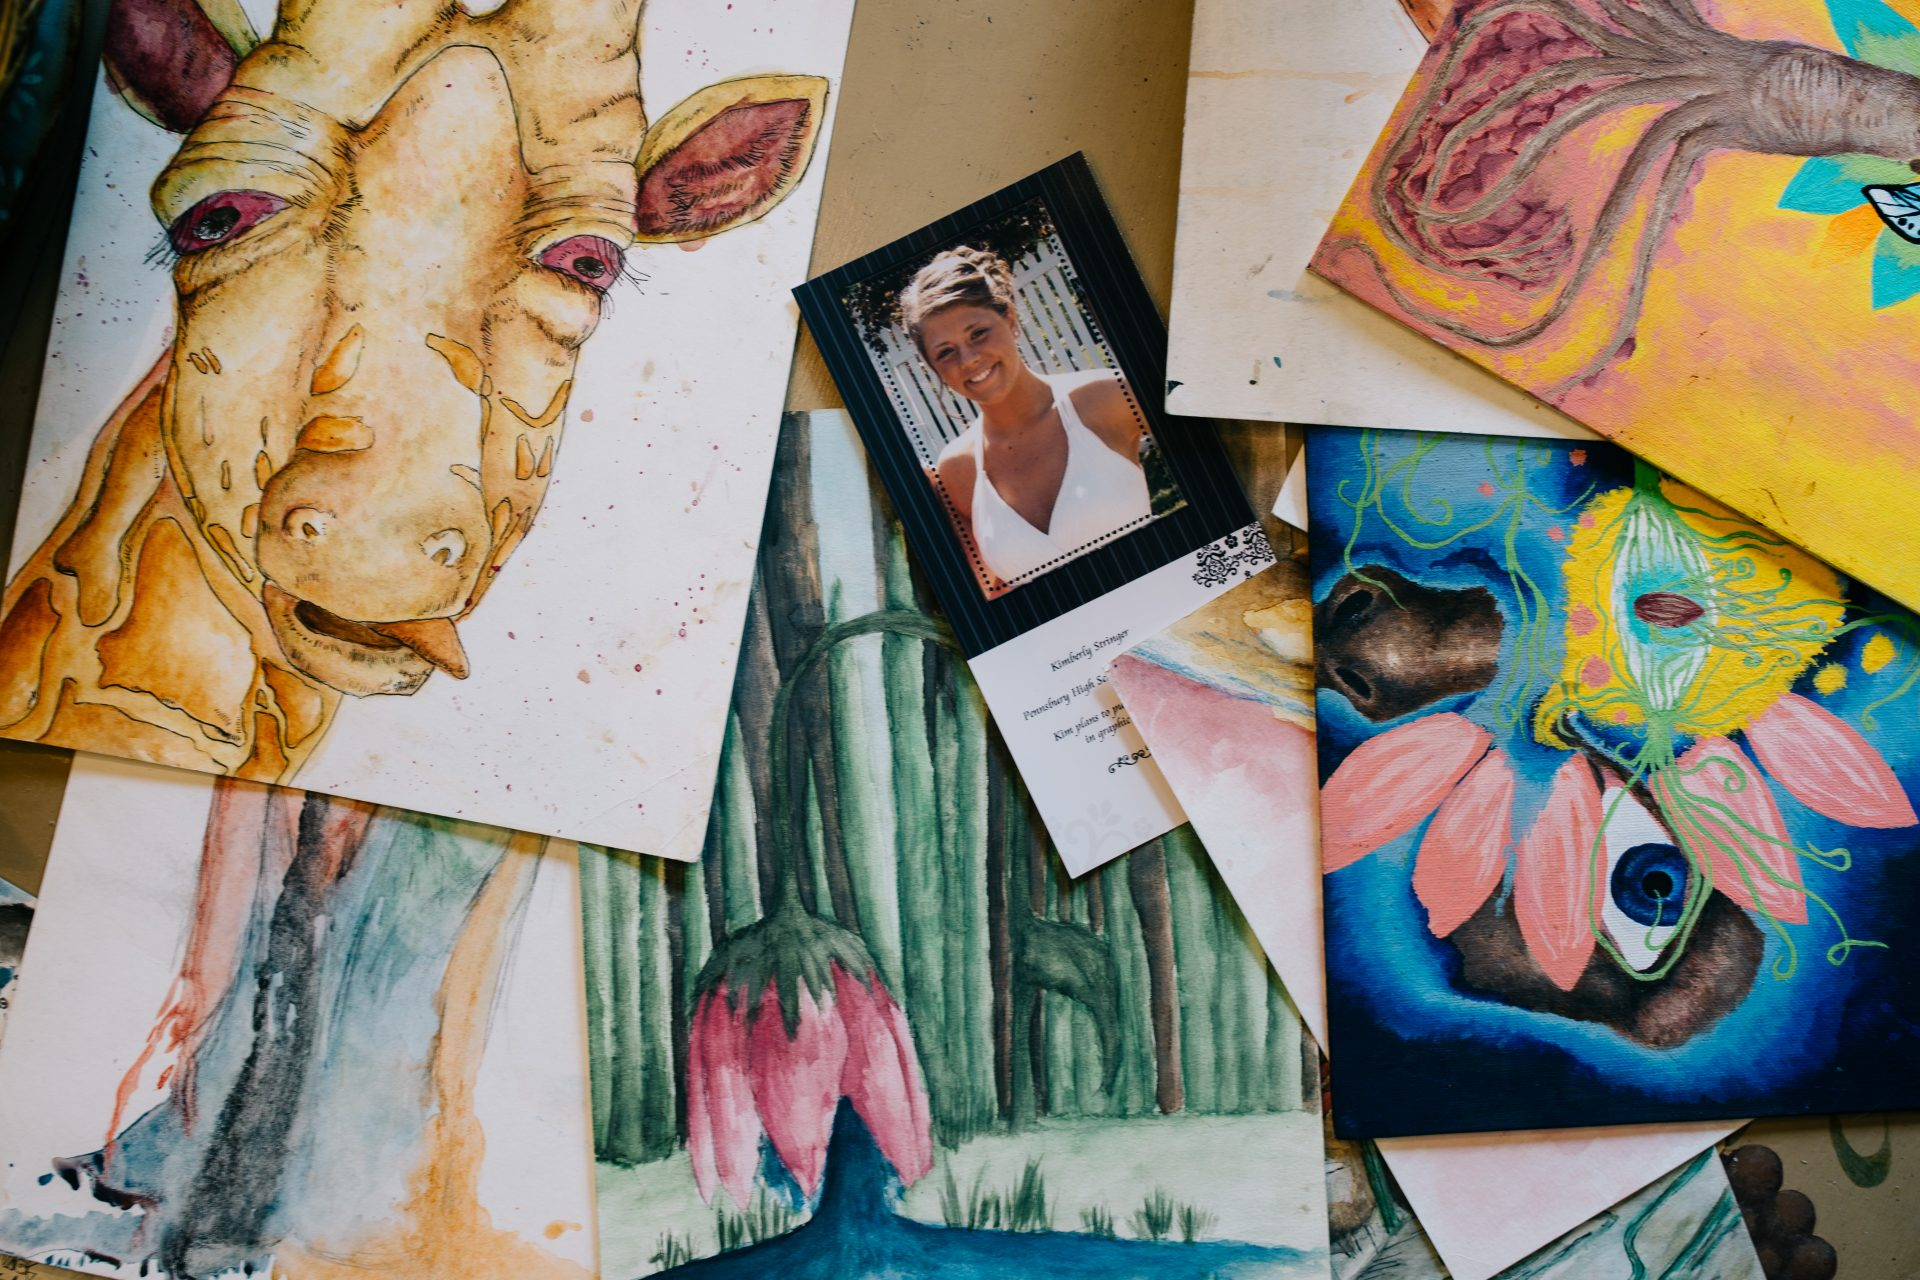 An assortment of Kimberly Stringer's art from when she was in school is displayed at her parents' home on Aug. 7, 2020. Paul and Martha Stringer noted that her art was the only thing Kimberly asked them to keep safe during her treatments.